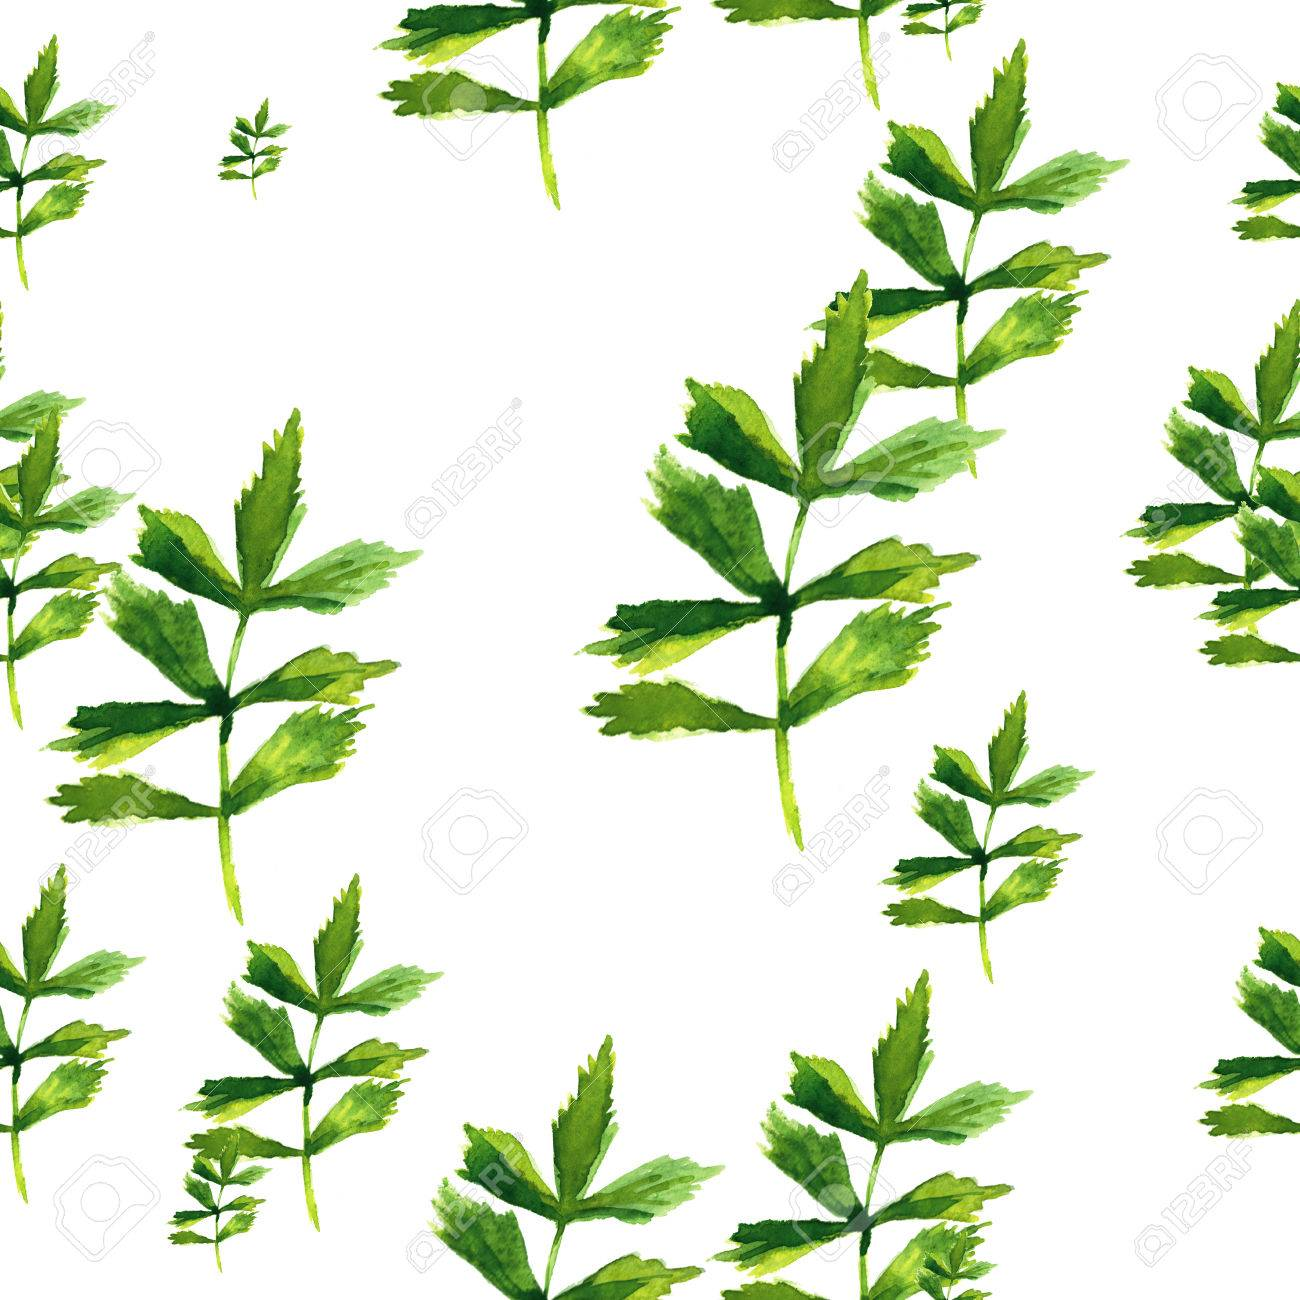 Herbal Wallpaper Beautiful Nature Background Seamless Pattern With Herbs And Leaves